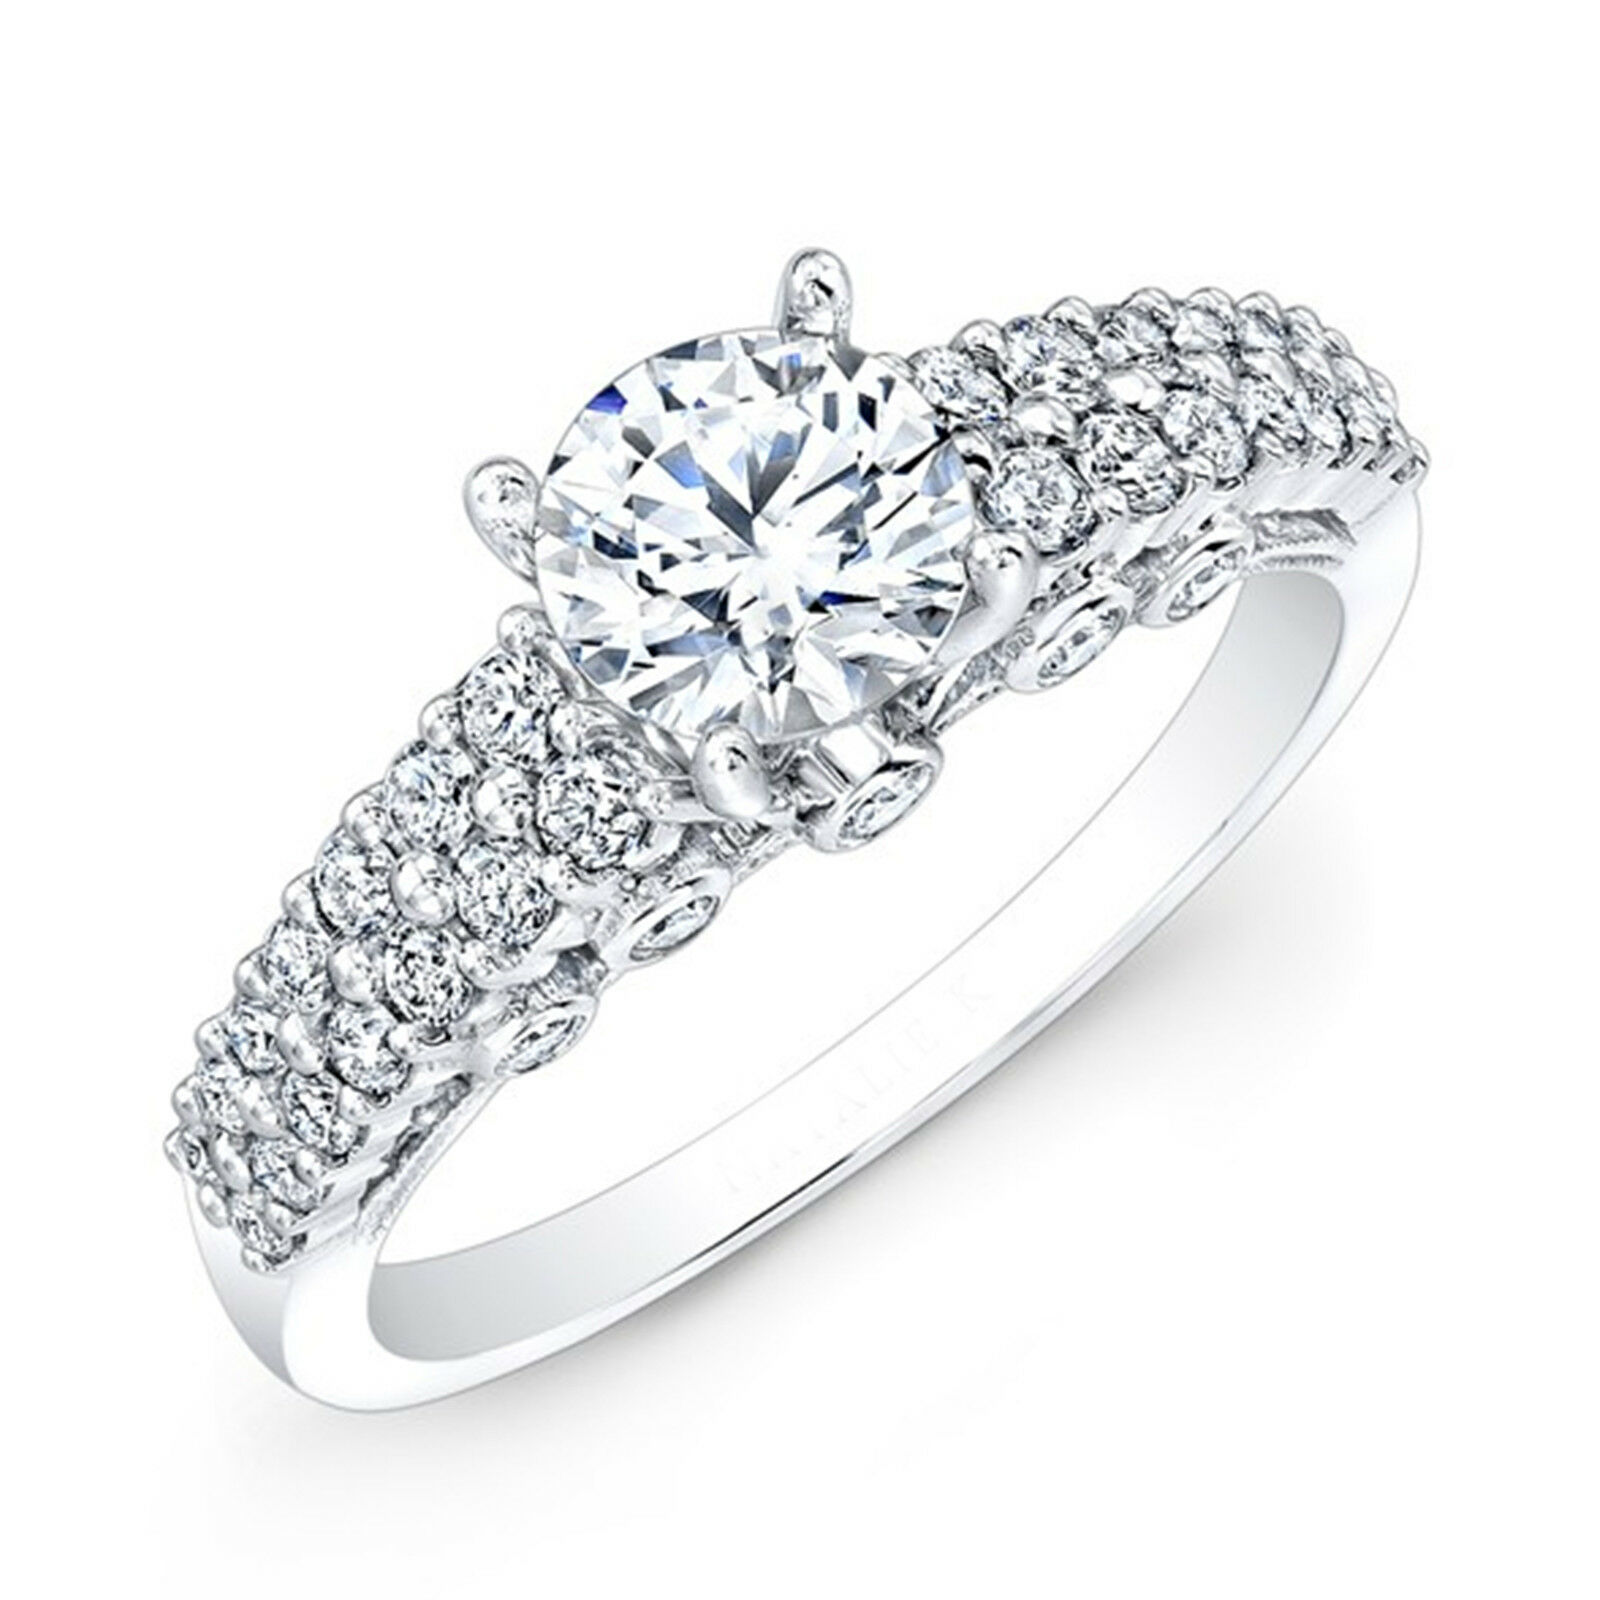 1.07 Ct Round Solitaire Diamond Engagement Ring 14K Solid White gold Rings 051